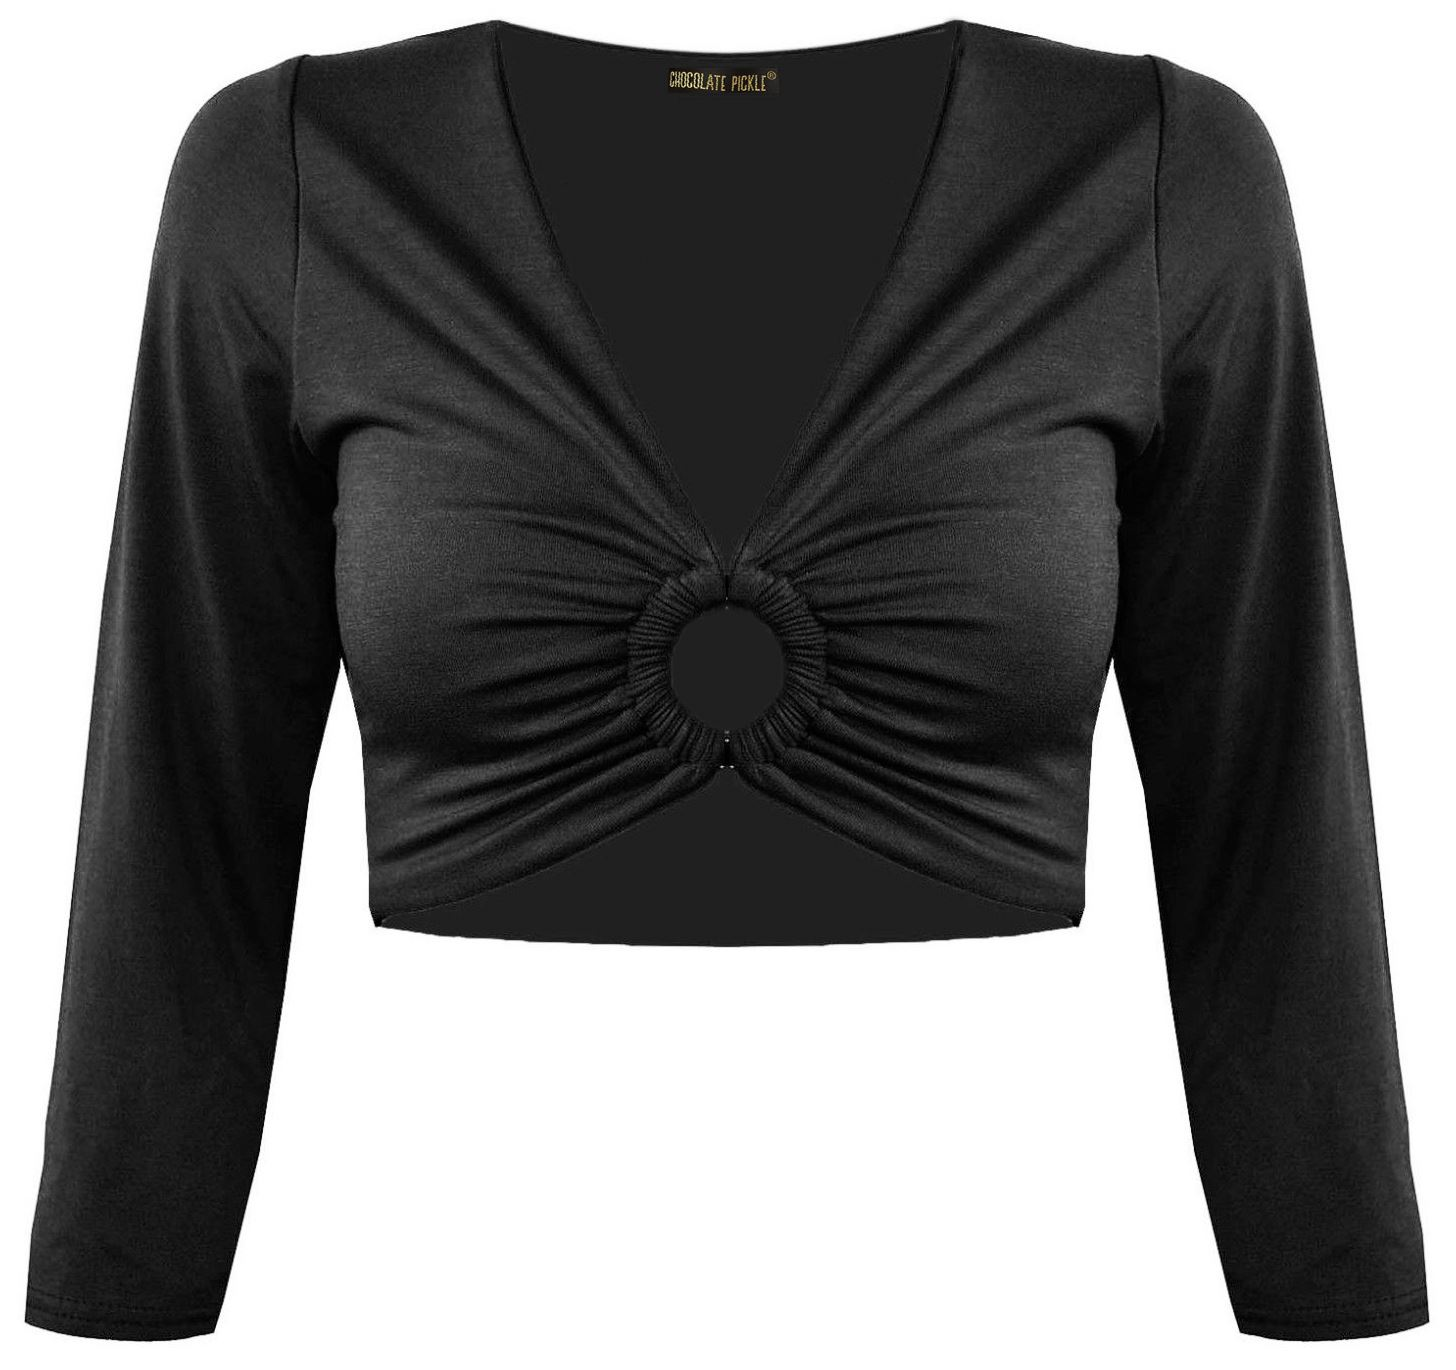 New Ladies Full Sleeve Rouched Buckle Front Ring Top Bolero Shrug Tops 8-22